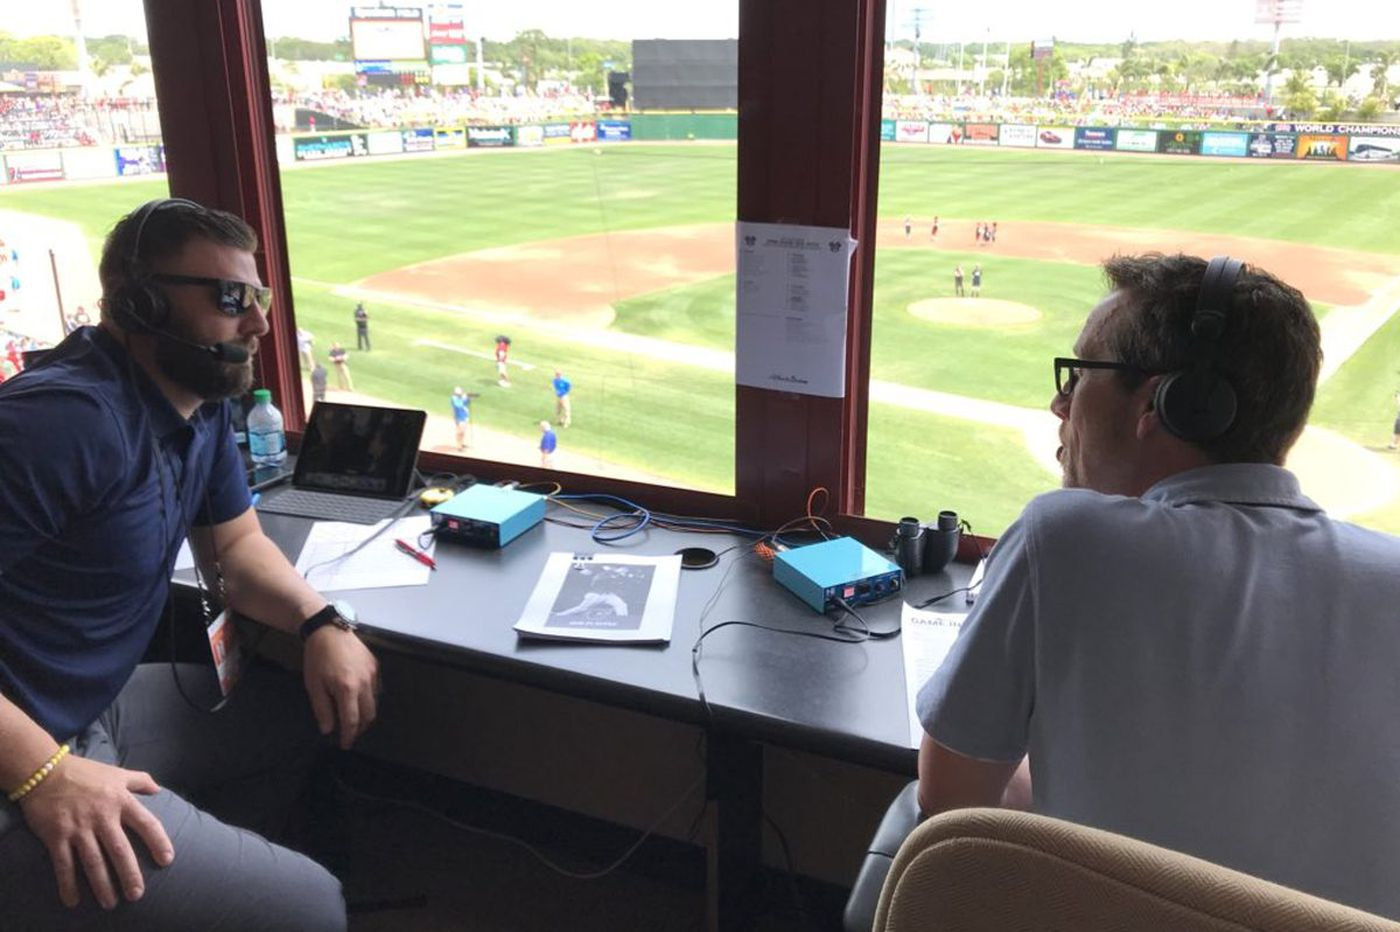 Kevin Frandsen will have expanded role on Phillies radio broadcasts; Kevin Stocker, Kevin Jordan not returning